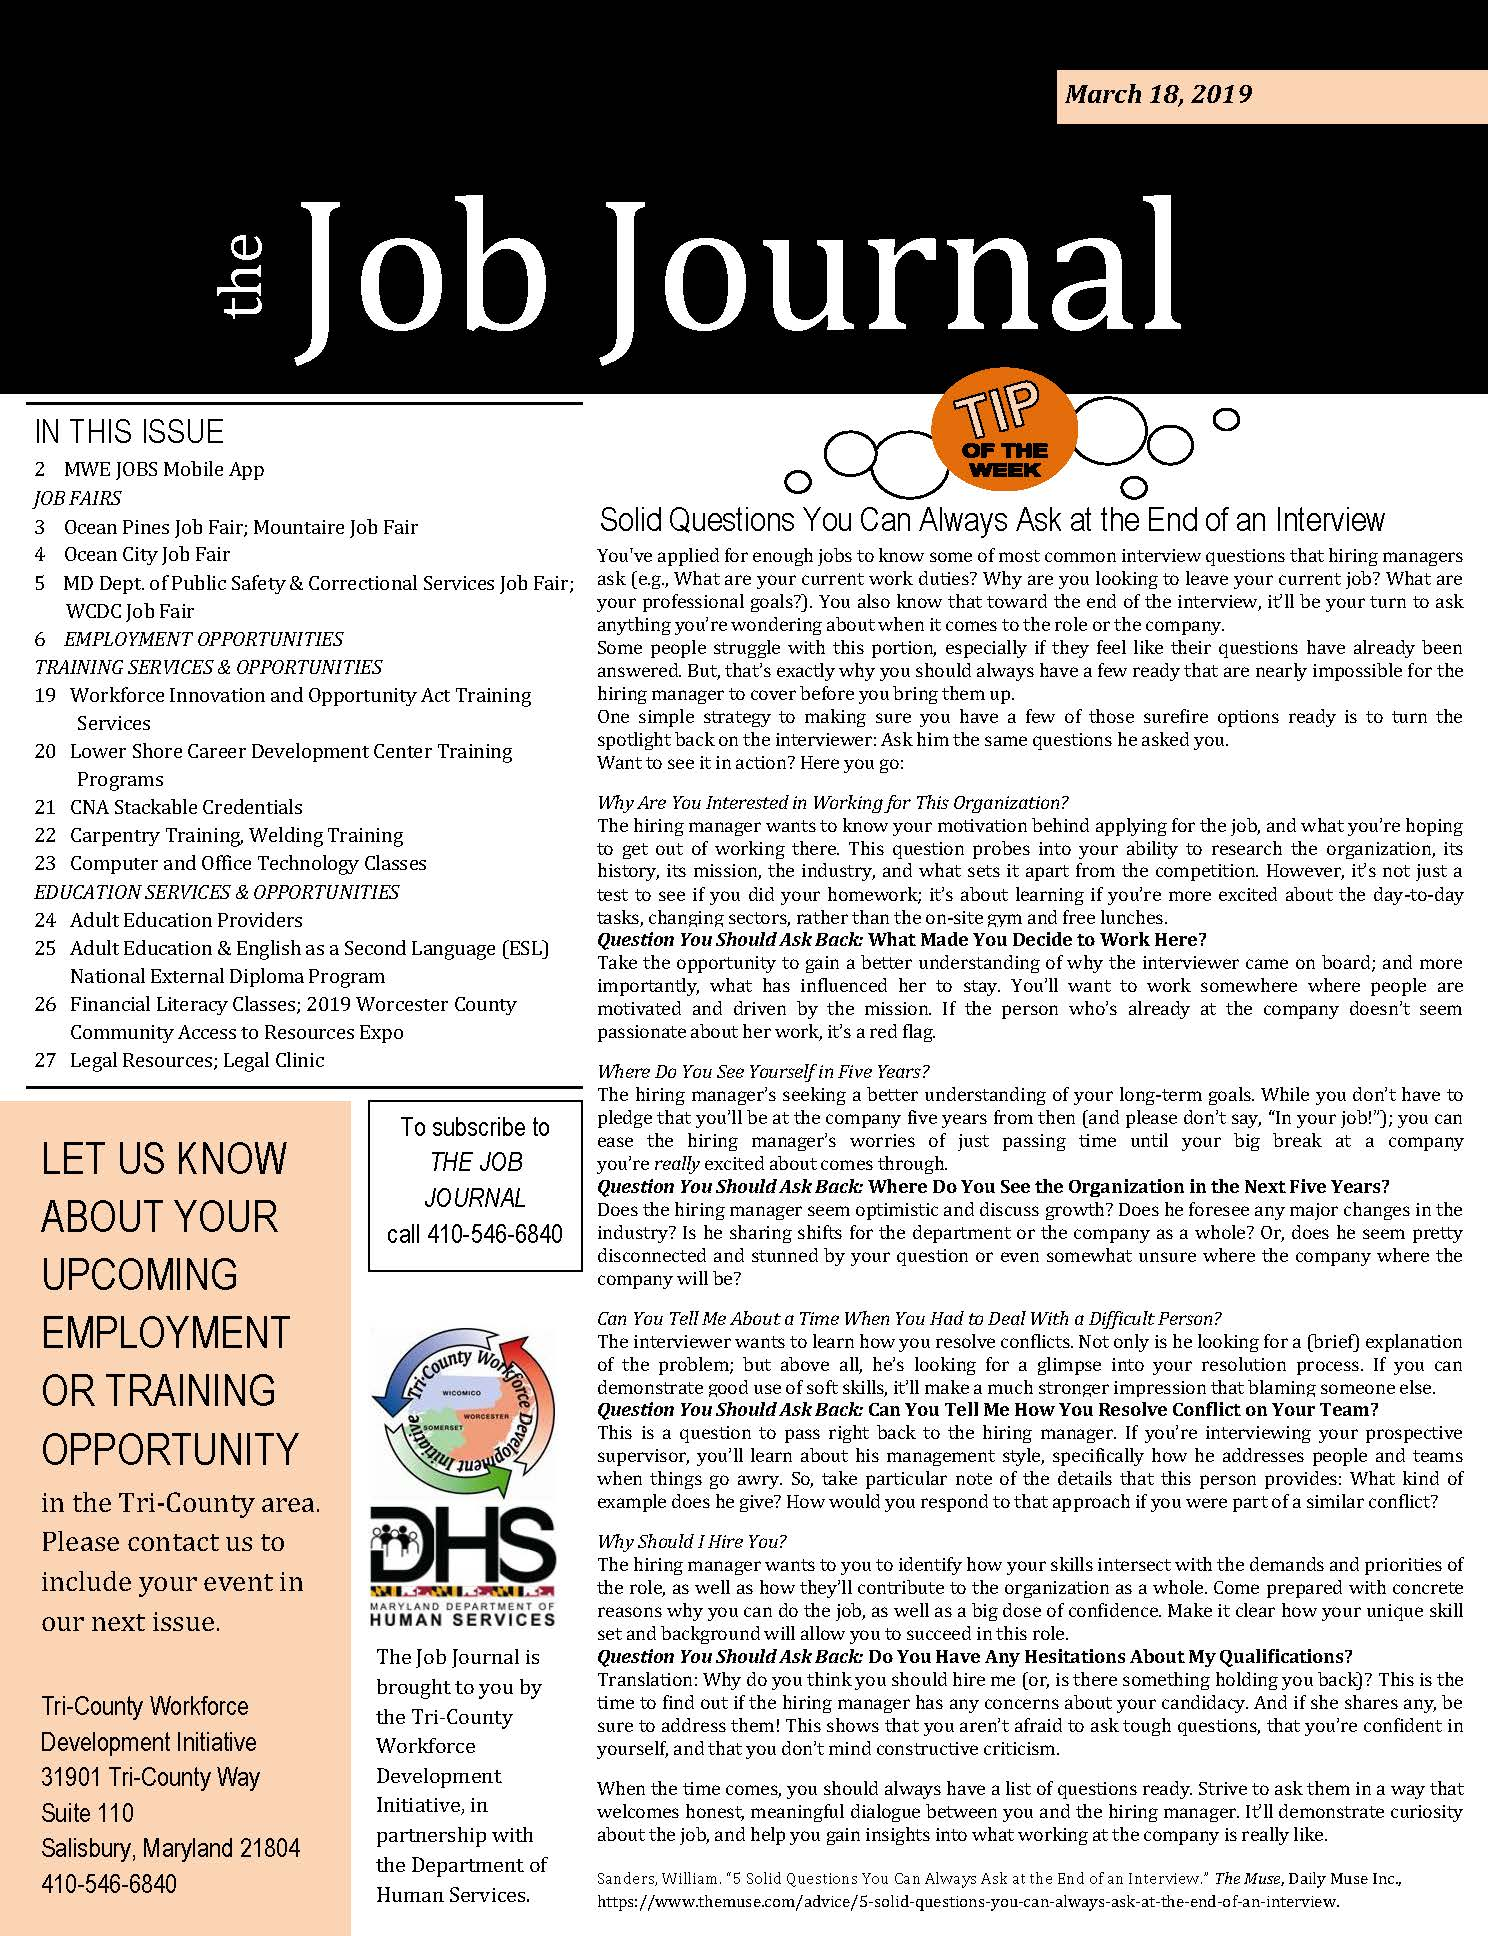 Cover page of The Job Journal for 03182019